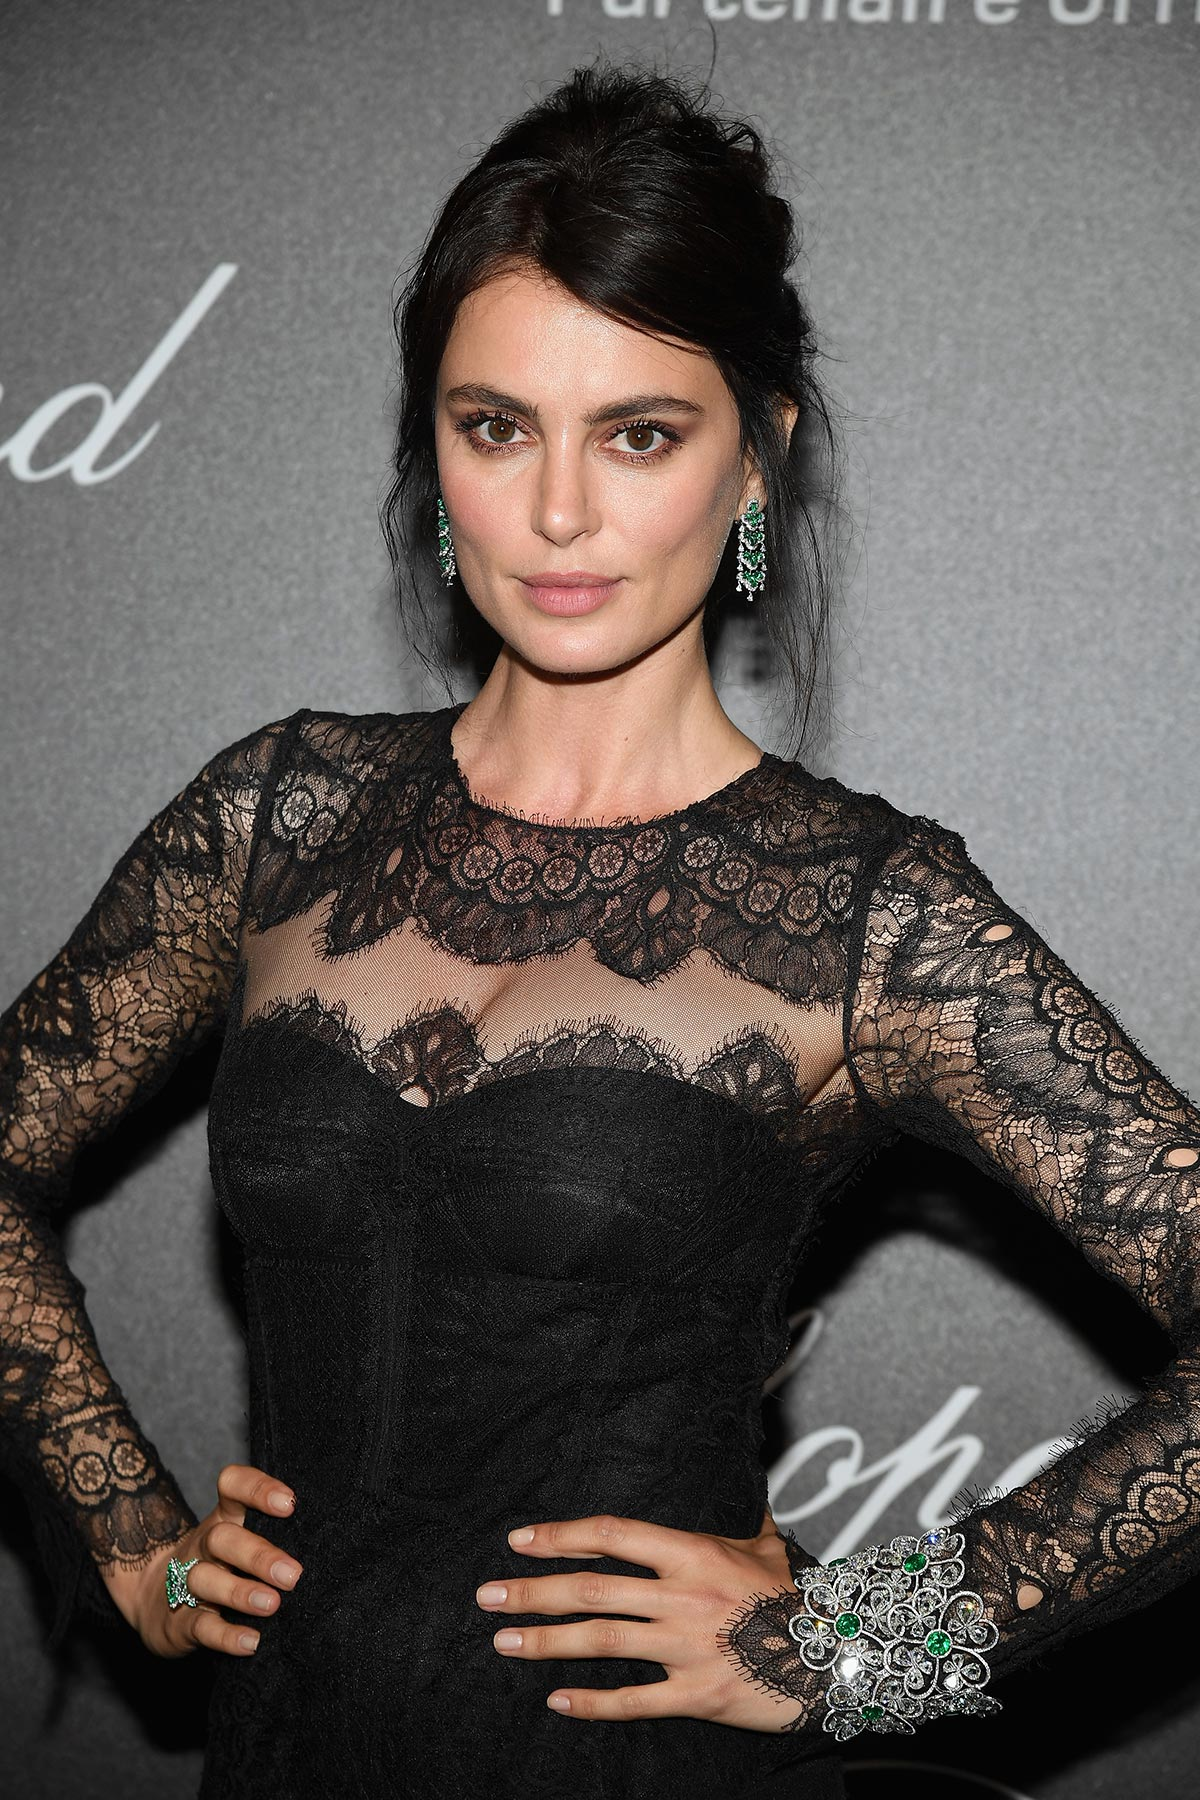 Cannes 2018 - Secret Chopard party - Catrinel Marlon - Hair and makeup Massimo Serini